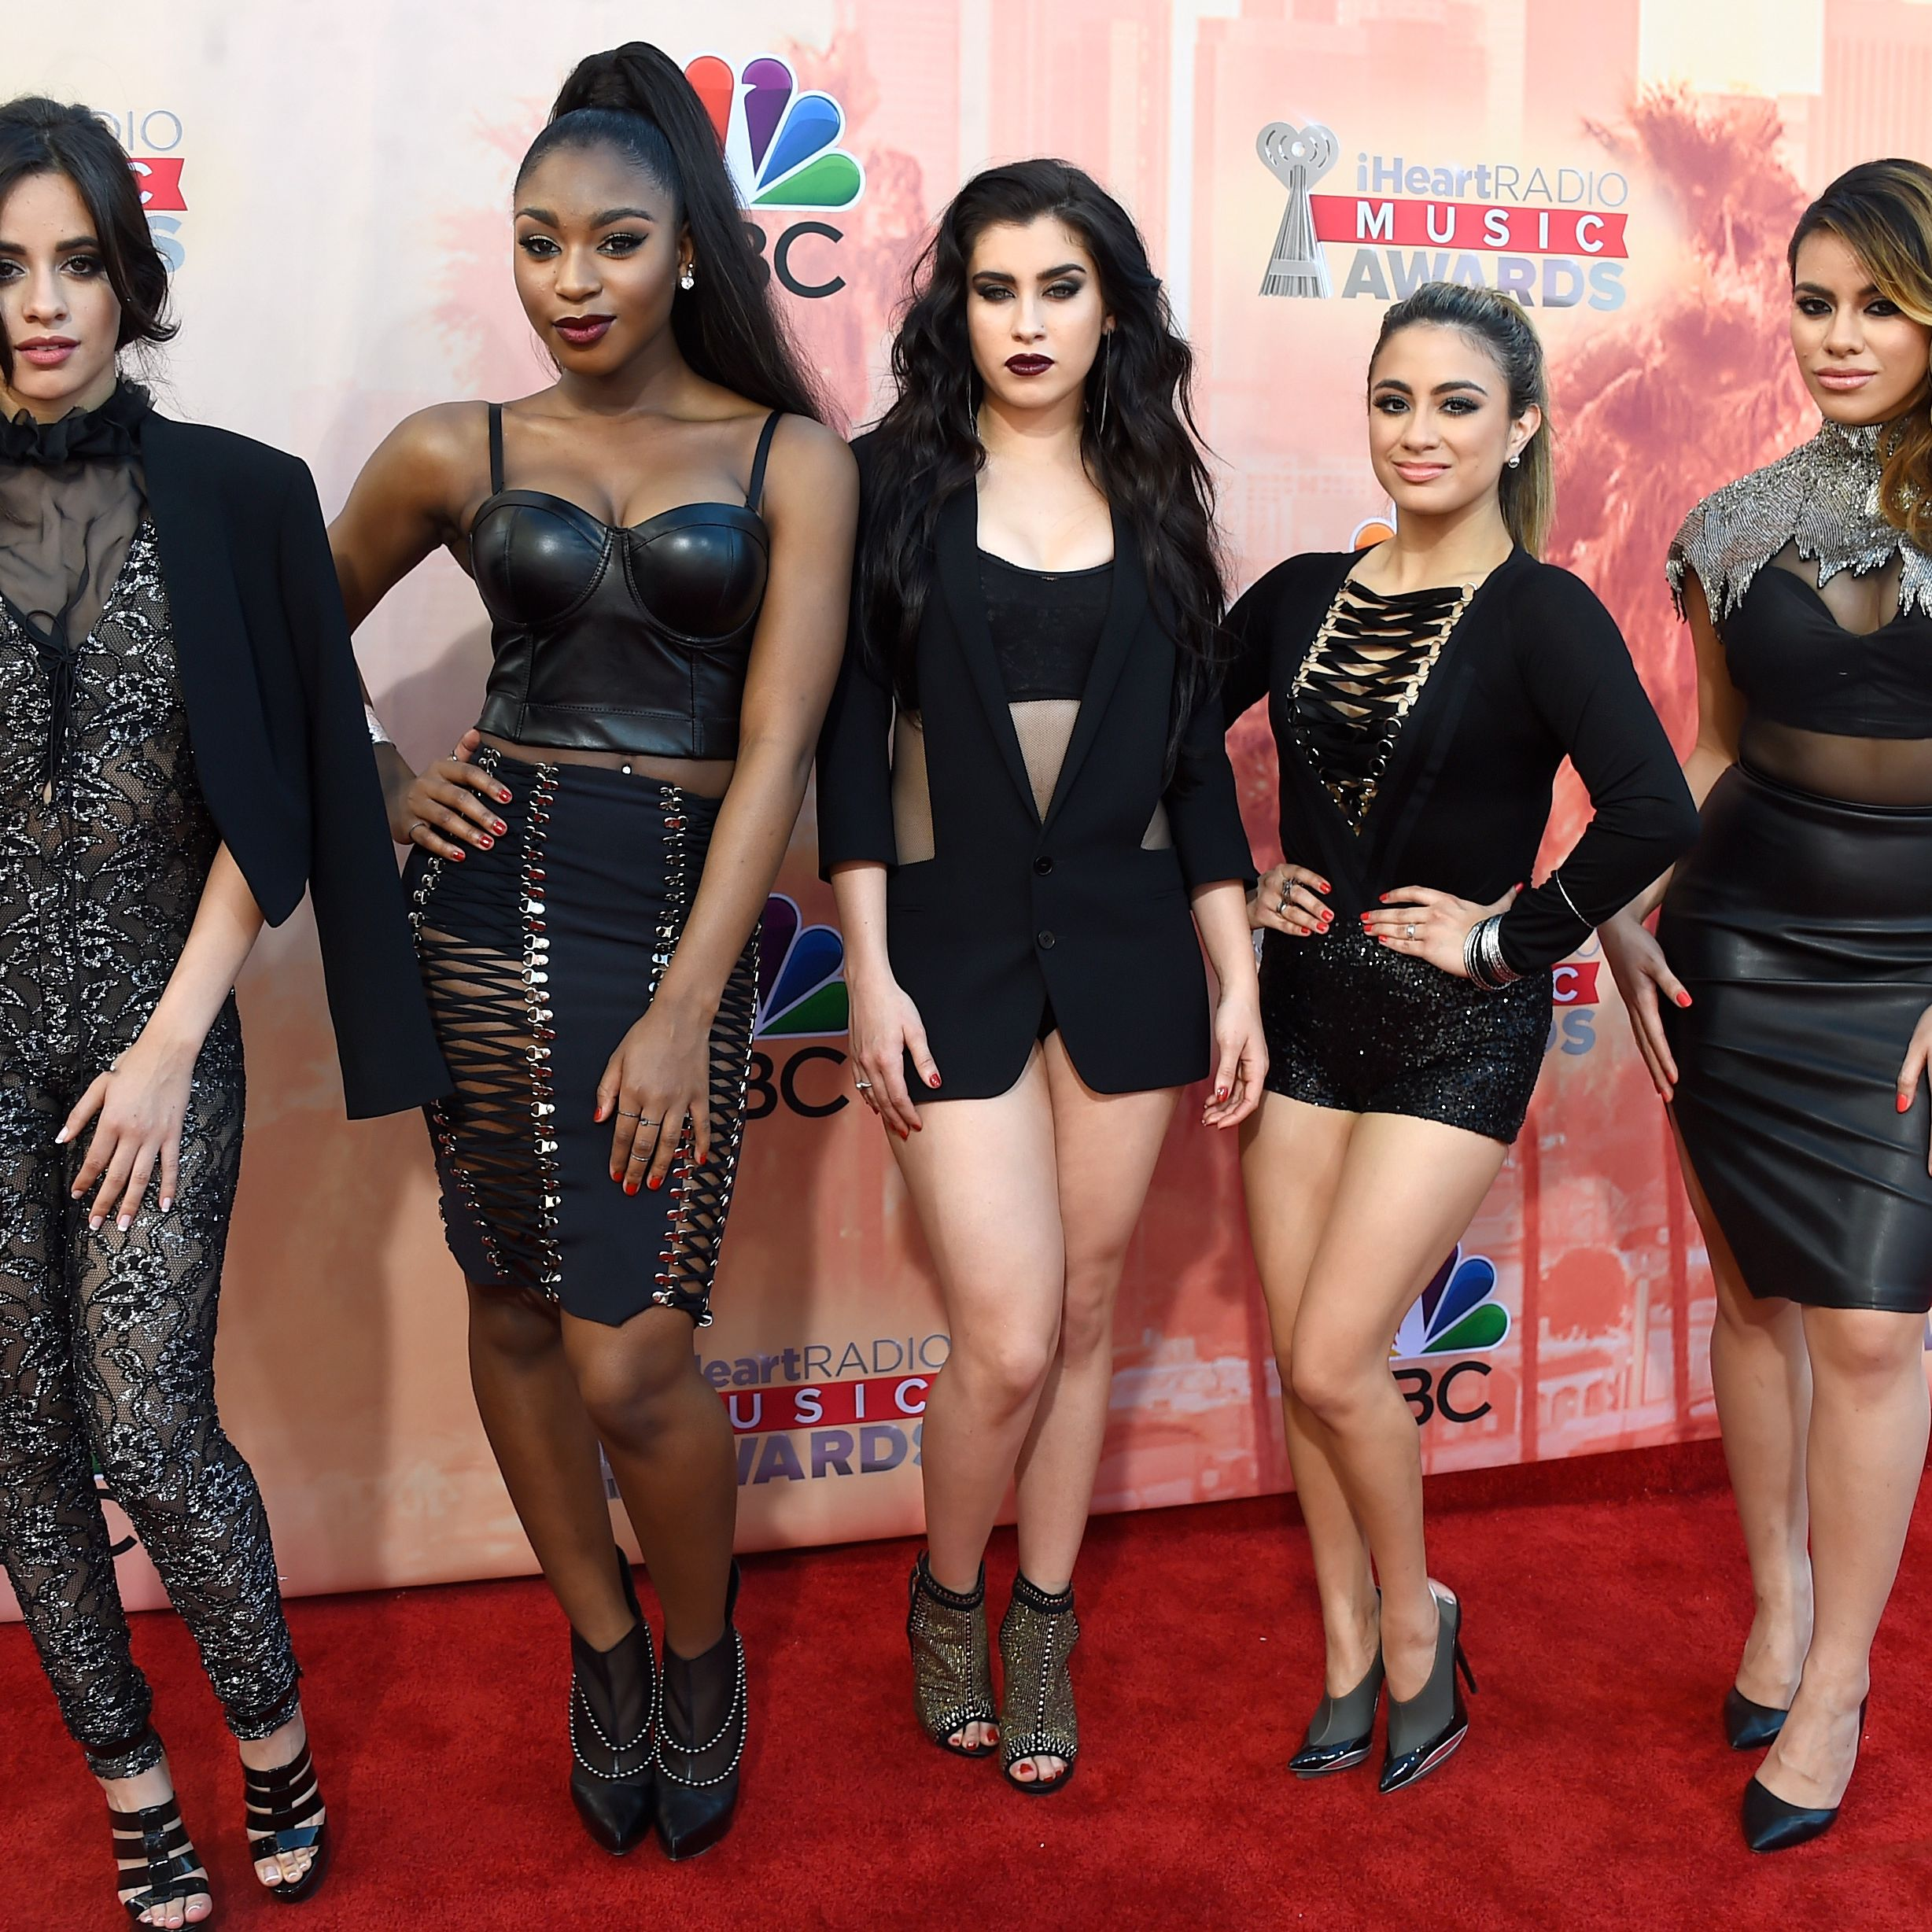 Fifth Harmony at the iHeartRadio Music Awards